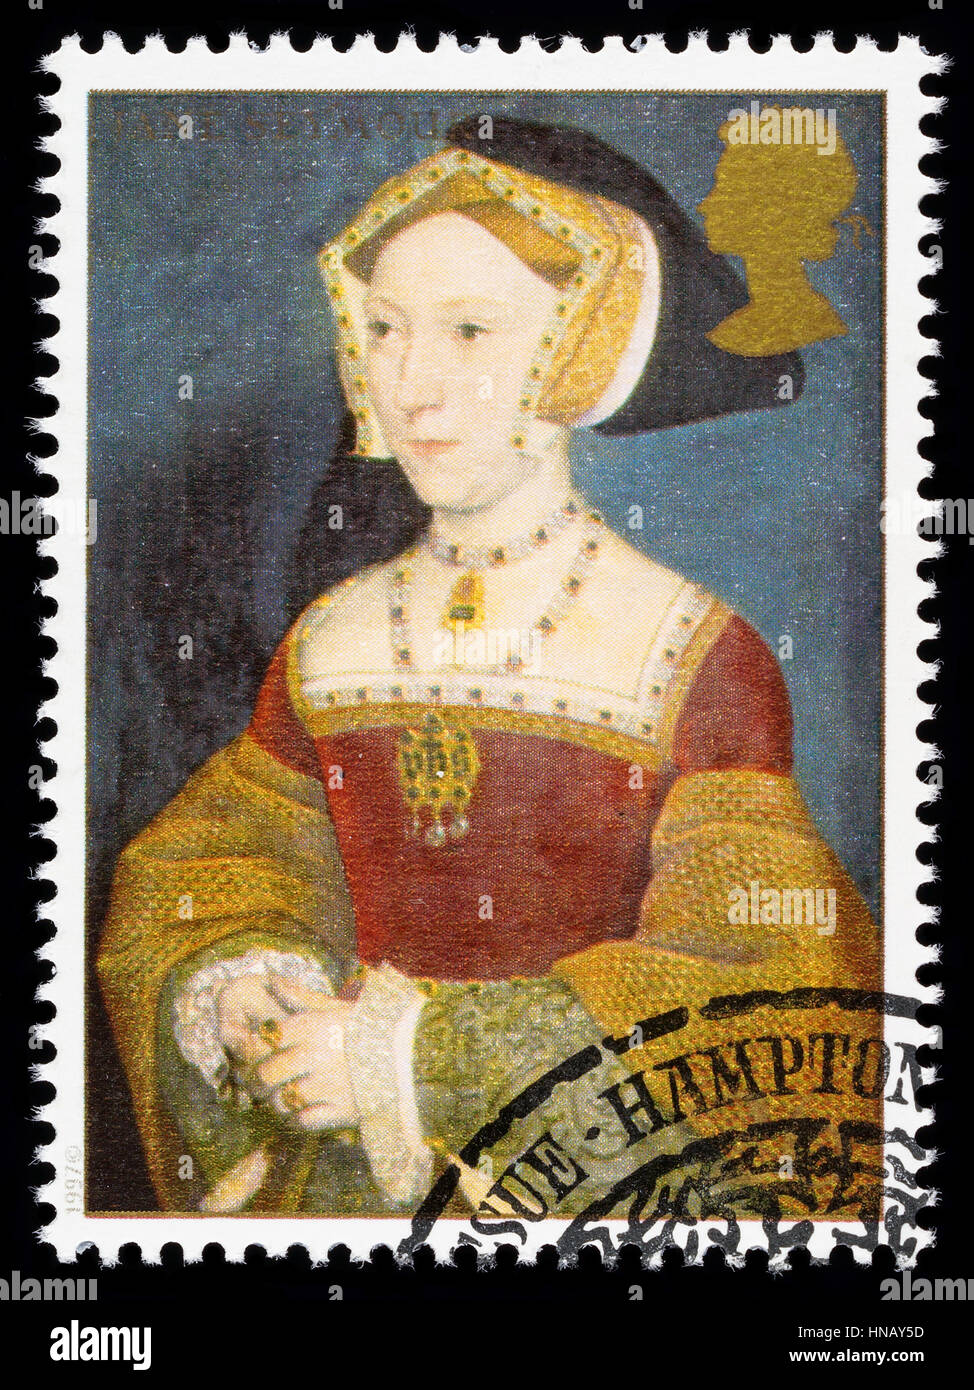 UNITED KINGDOM - CIRCA 1997: used postage stamp printed in Britain commemorating King Henry 8th showing Jane Seymour - Stock Image